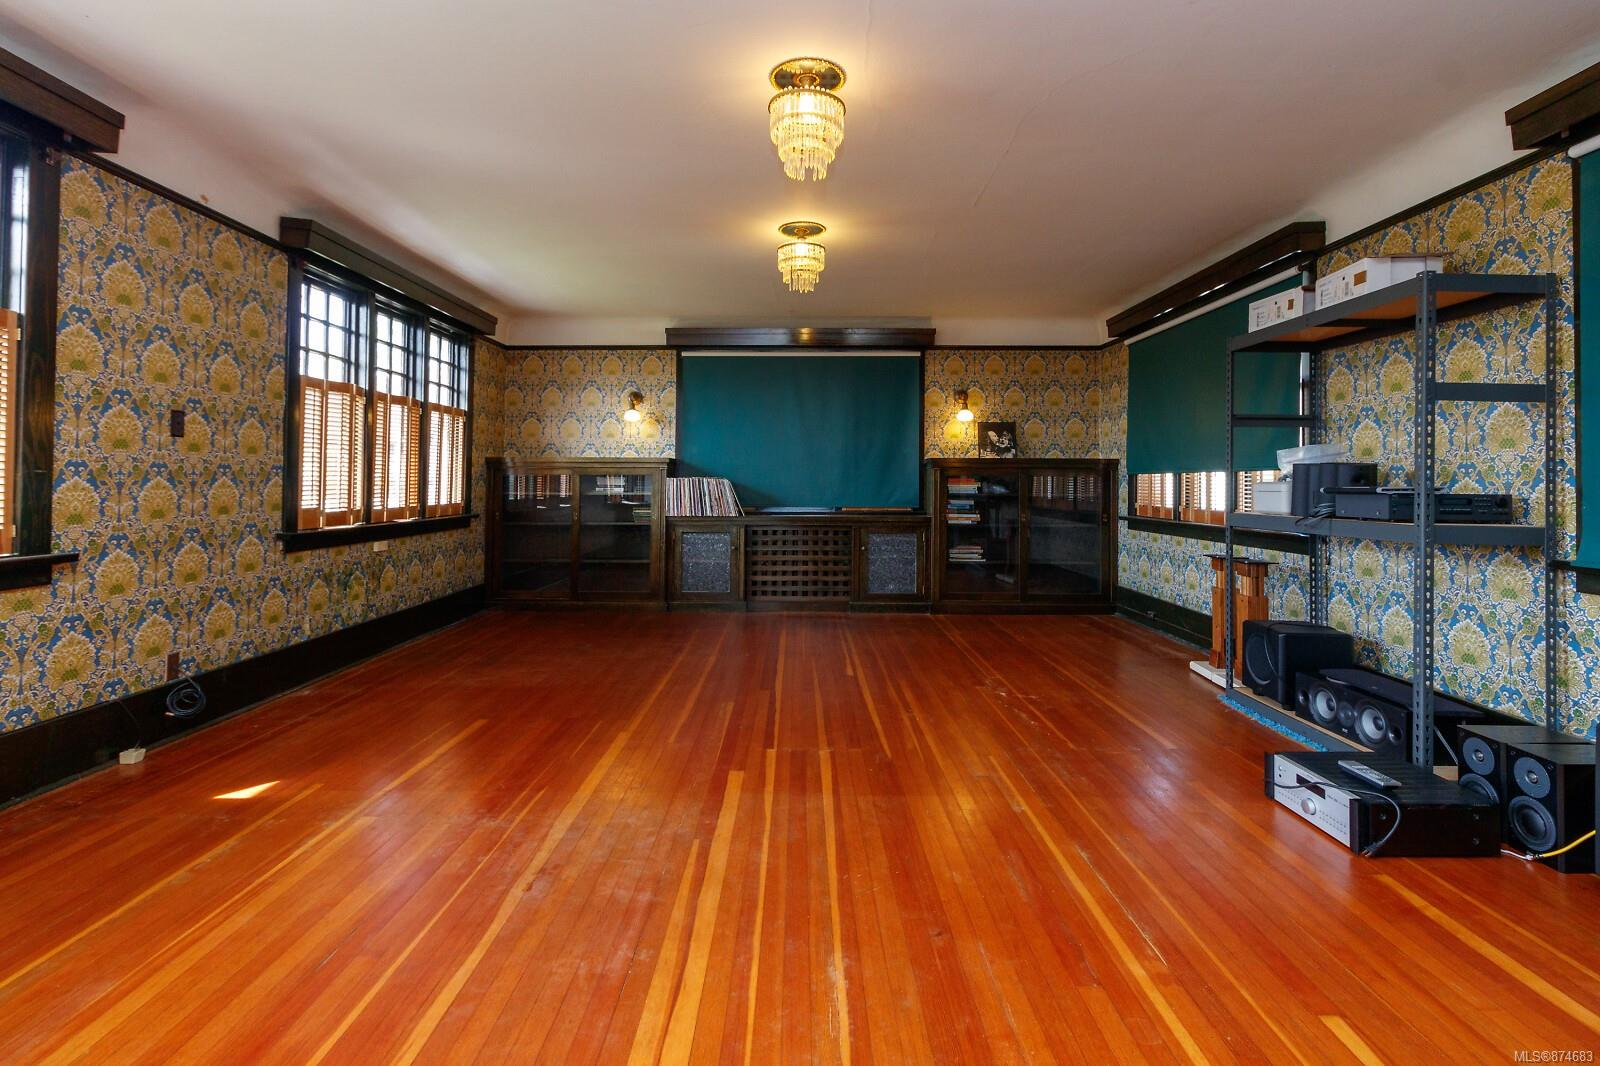 Photo 34 at 3 - 830 St. Charles Street, Rockland, Victoria